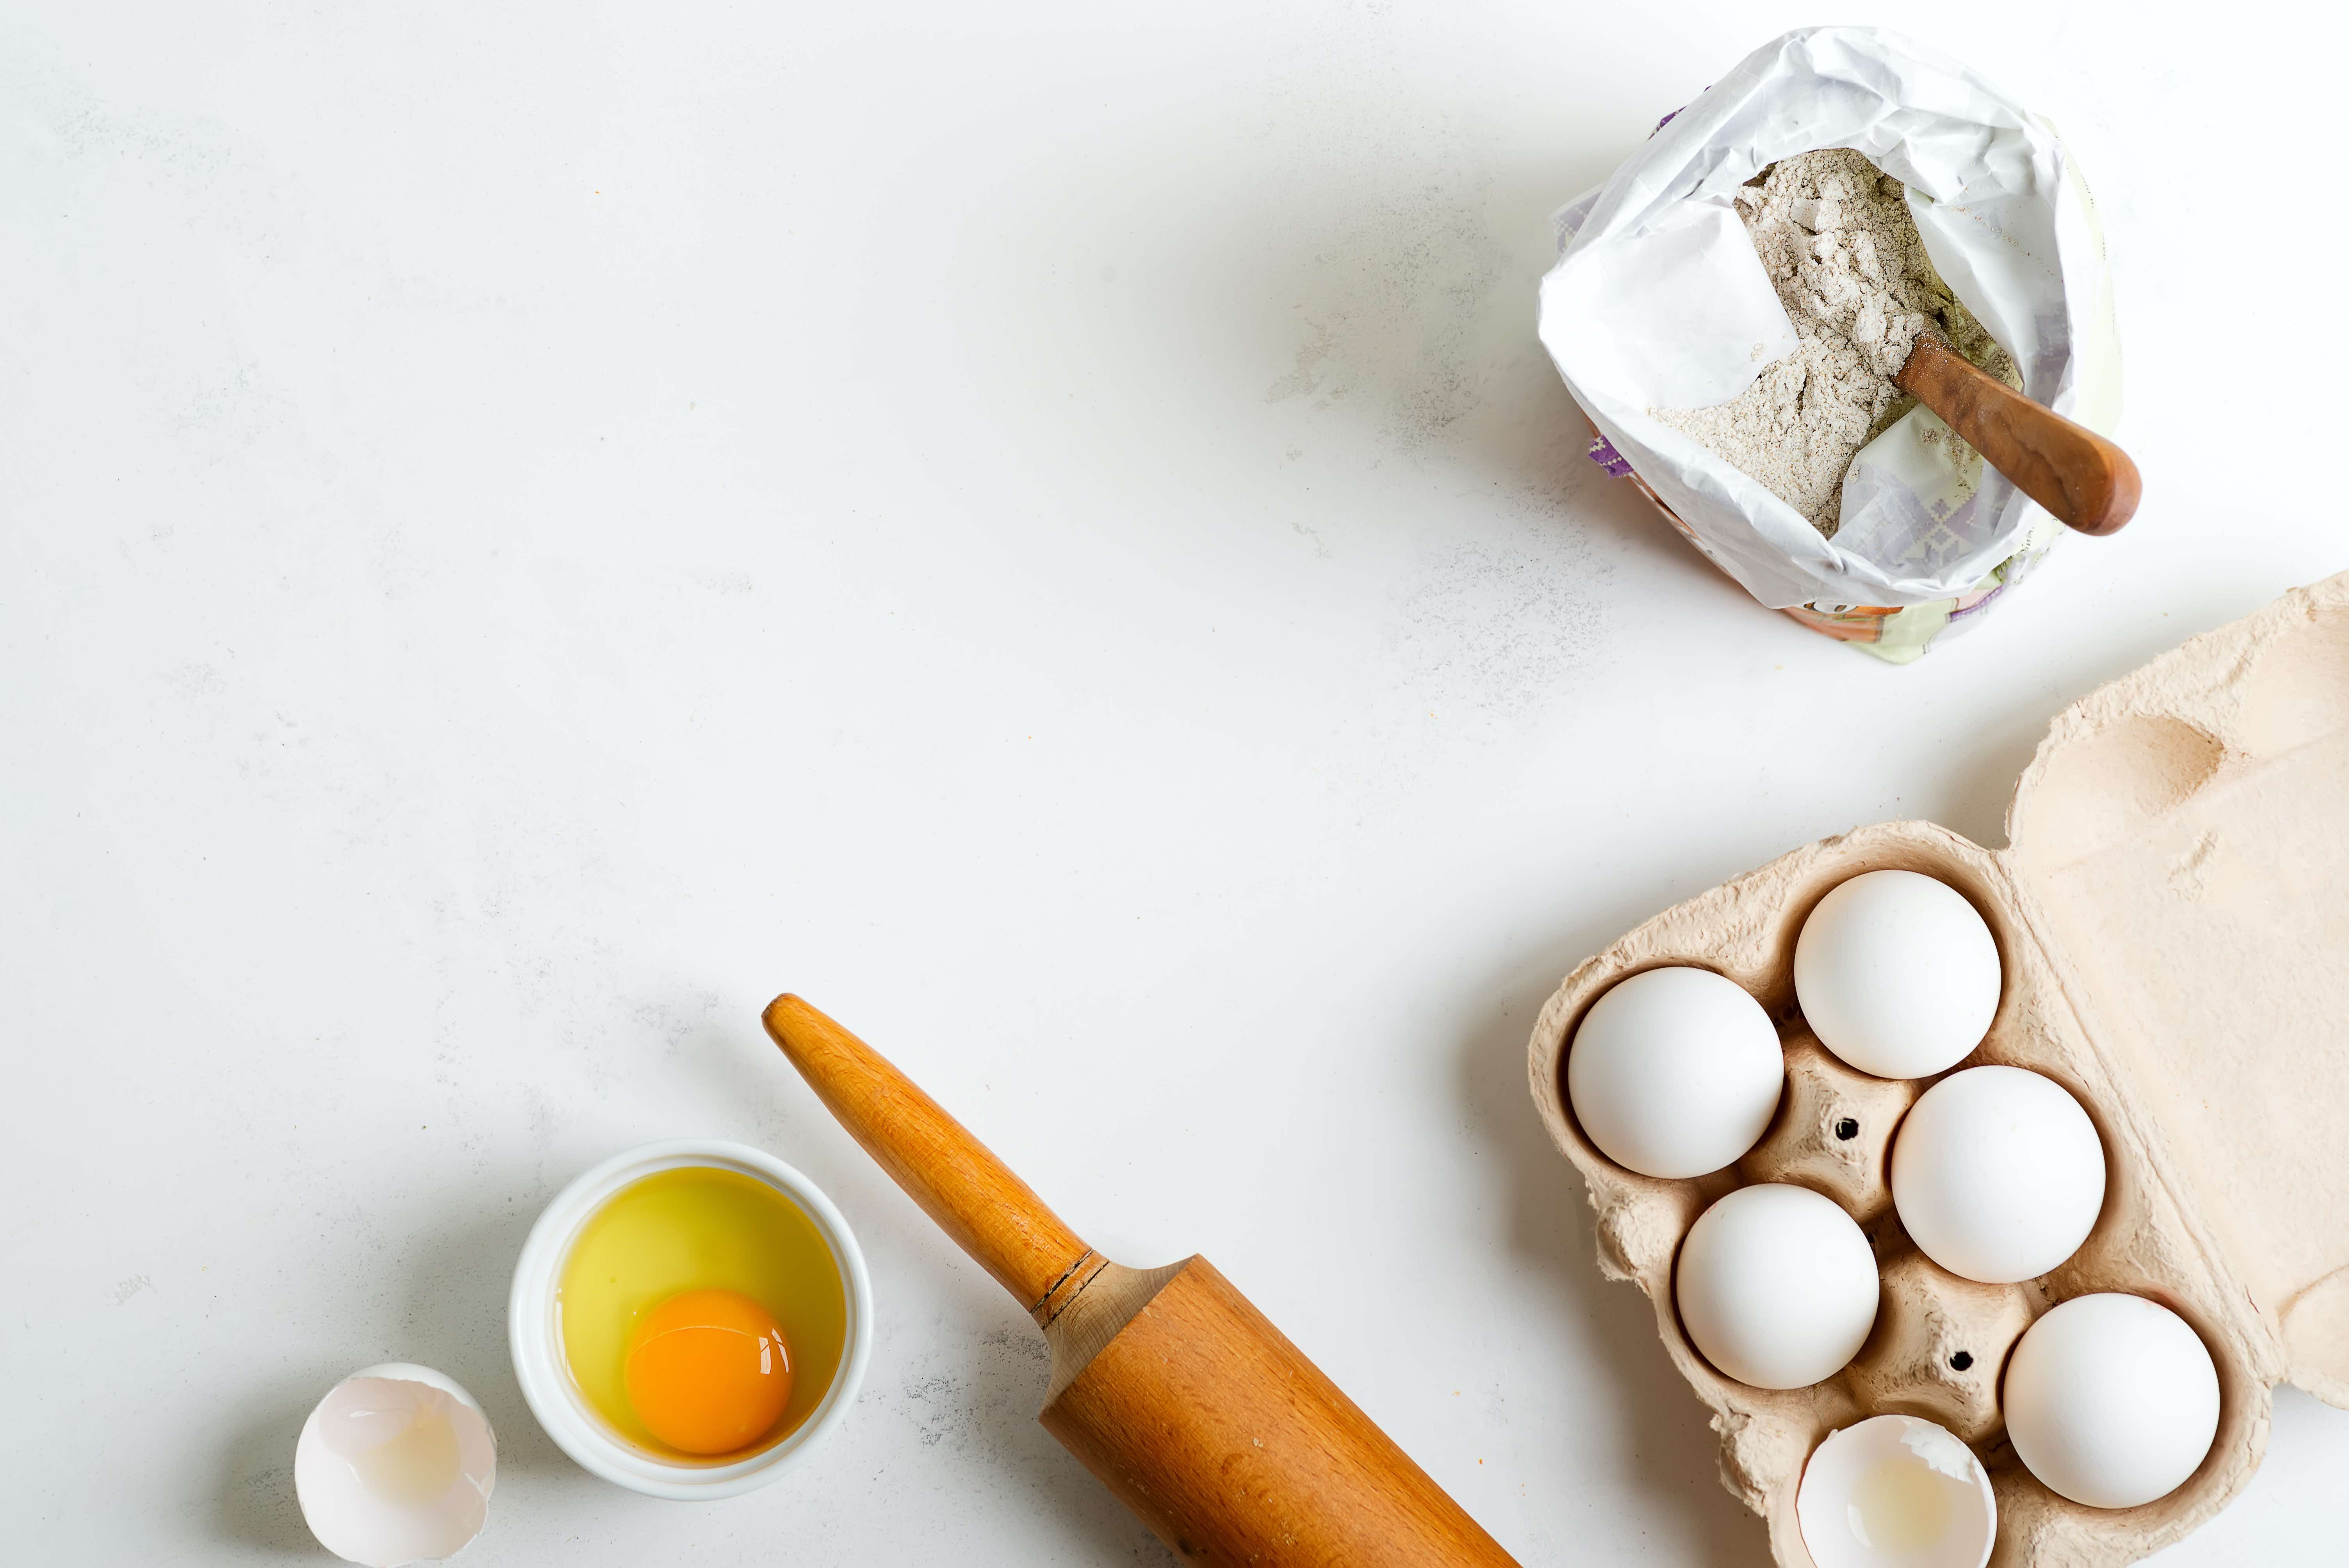 ingredients for making fresh bread